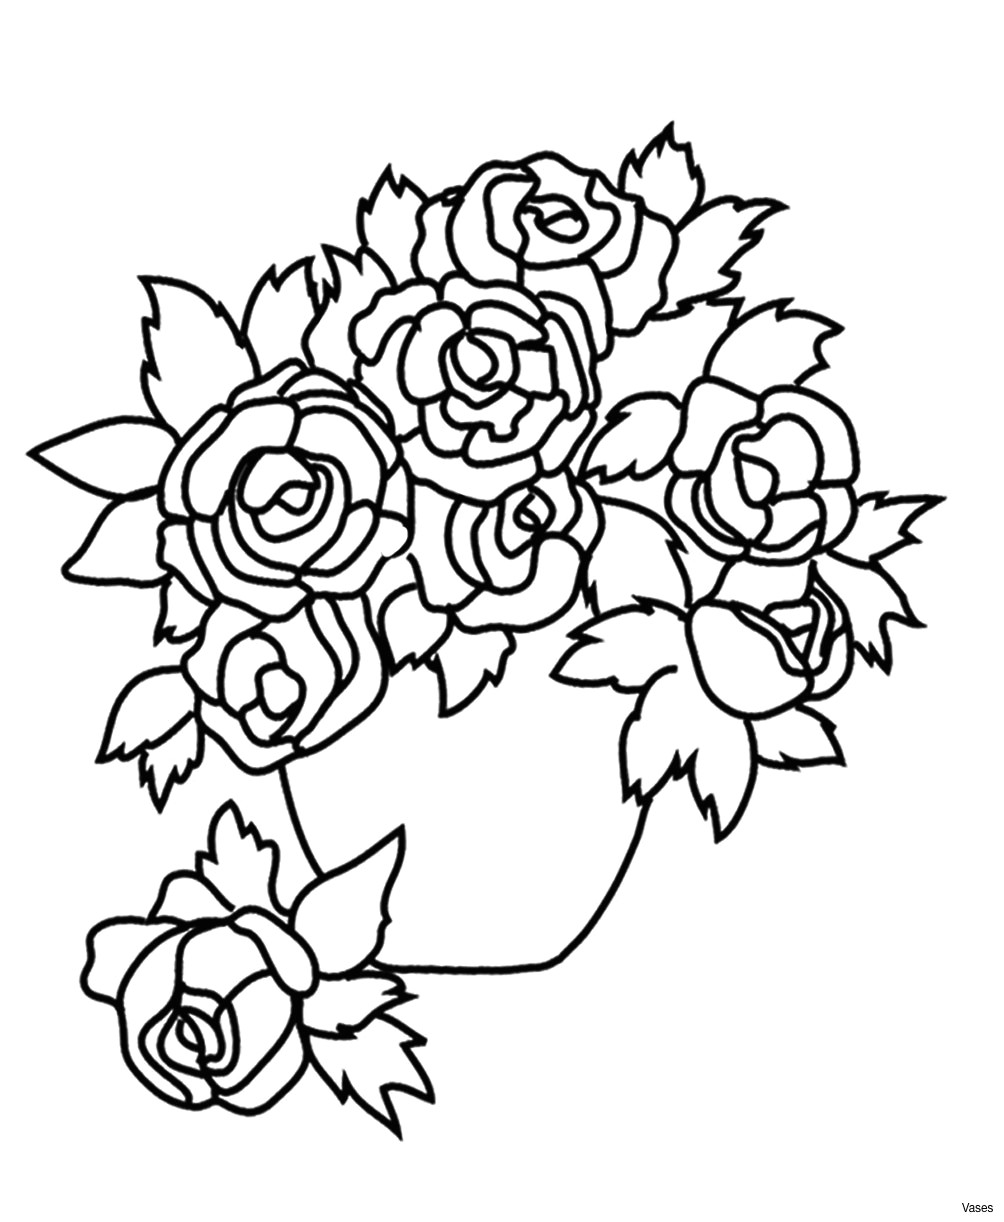 flower coloring pages for adults new cool vases flower vase coloring page pages flowers jpg 1004x1222